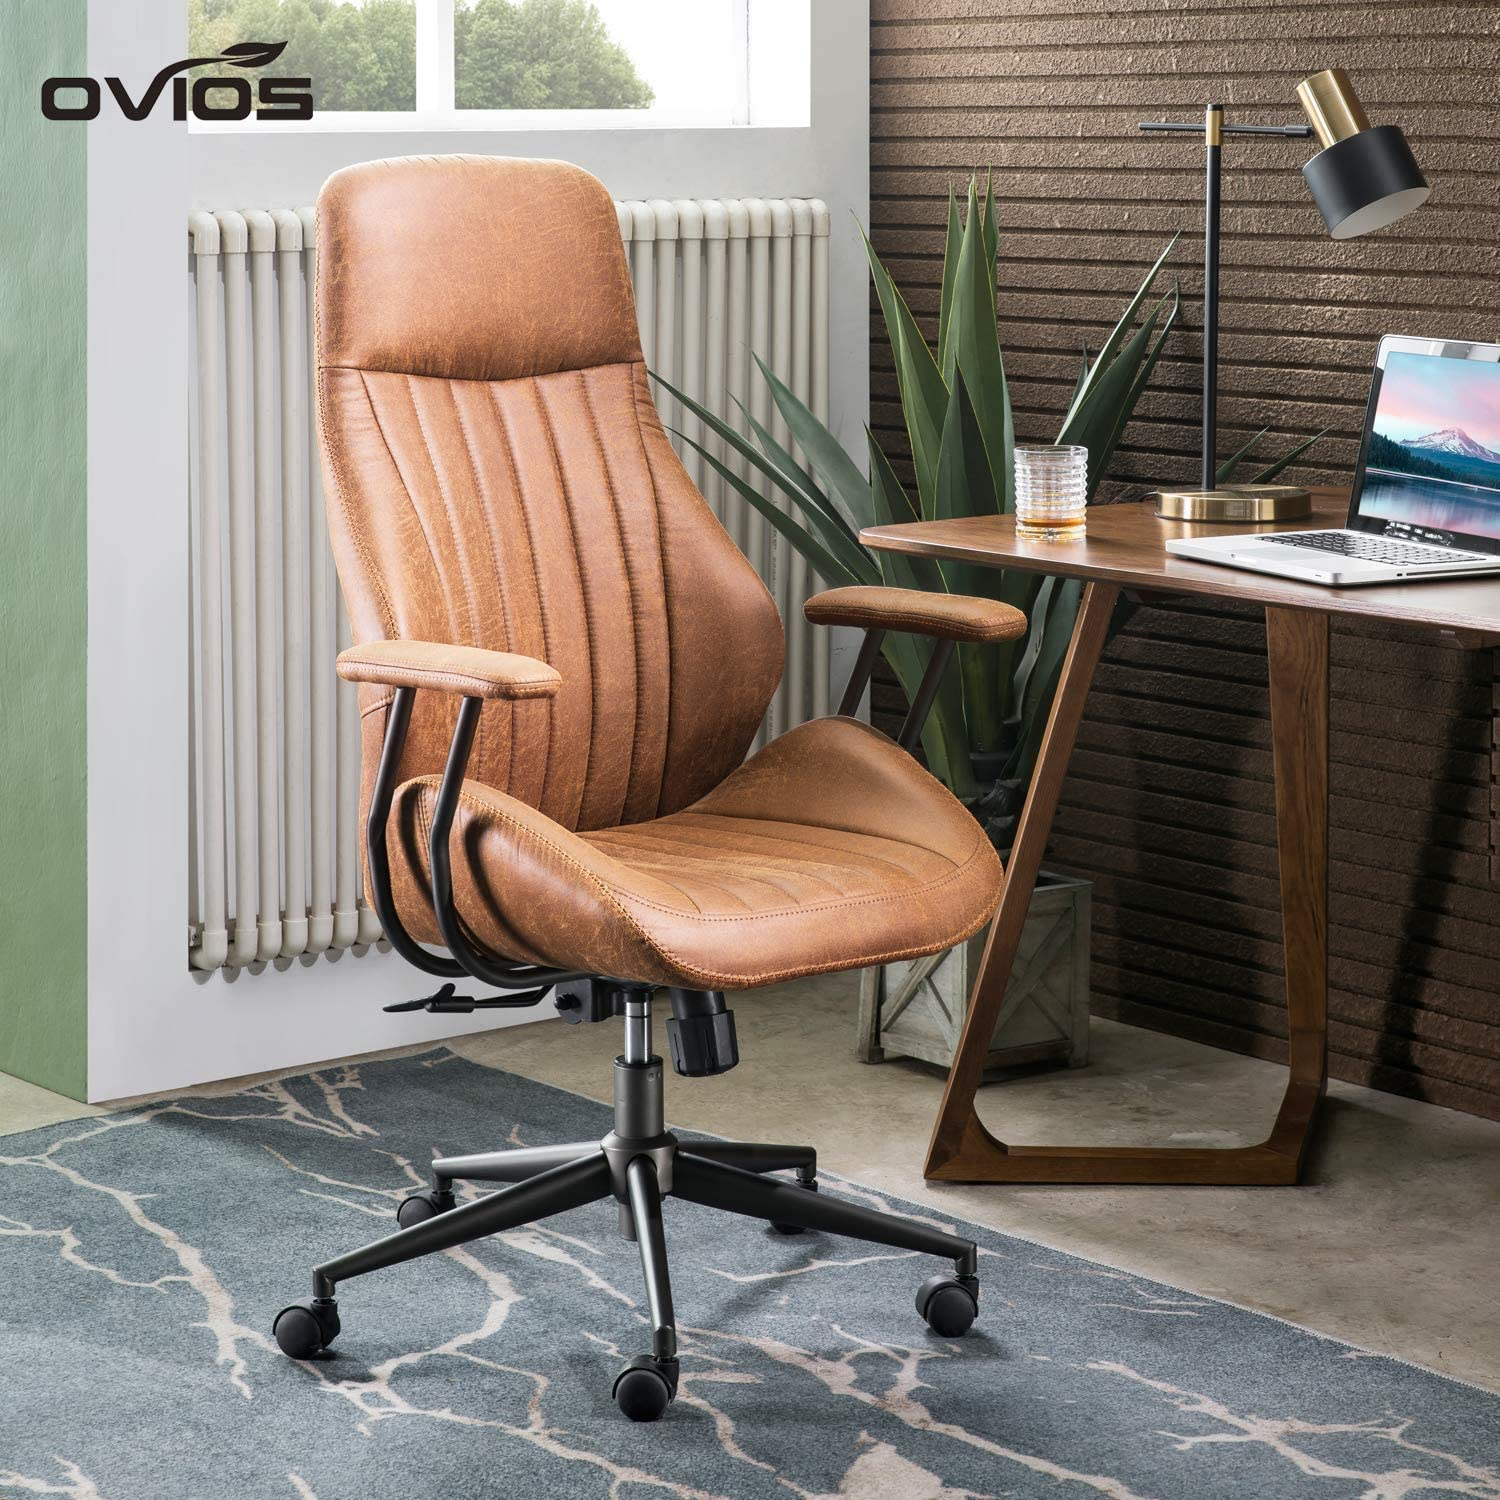 OVIOS Ergonomic Office Chair,Modern Computer Desk Chair,high Back Suede Fabric Desk Chair with Lumbar Support for Executive or Home Office (Light Brown)